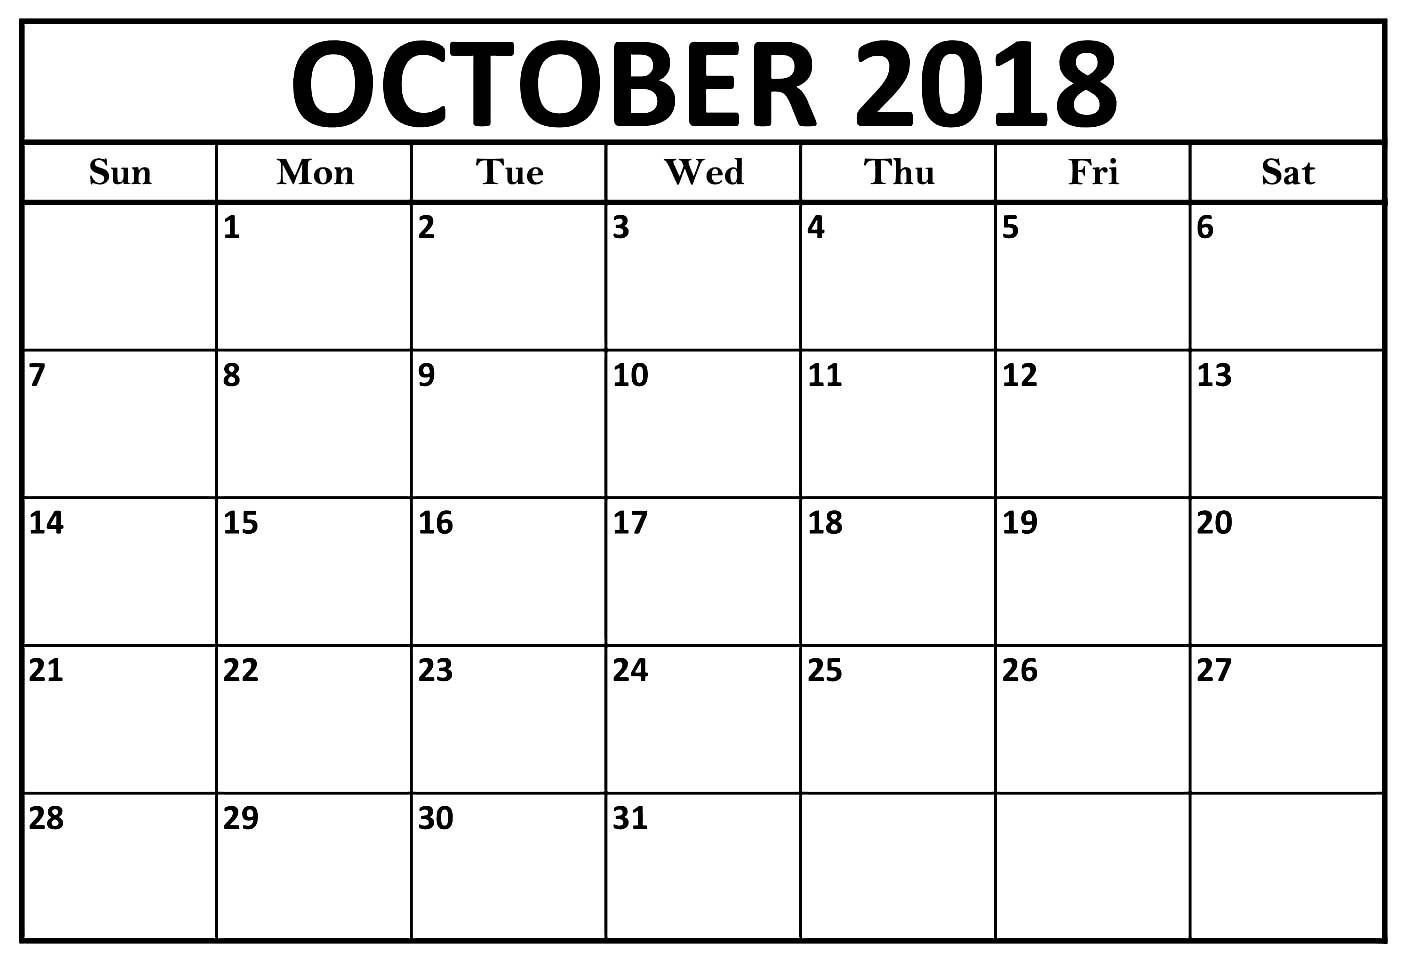 graphic regarding October Calendar Printable named Oct Calendar 2018 Major Print Template Oct